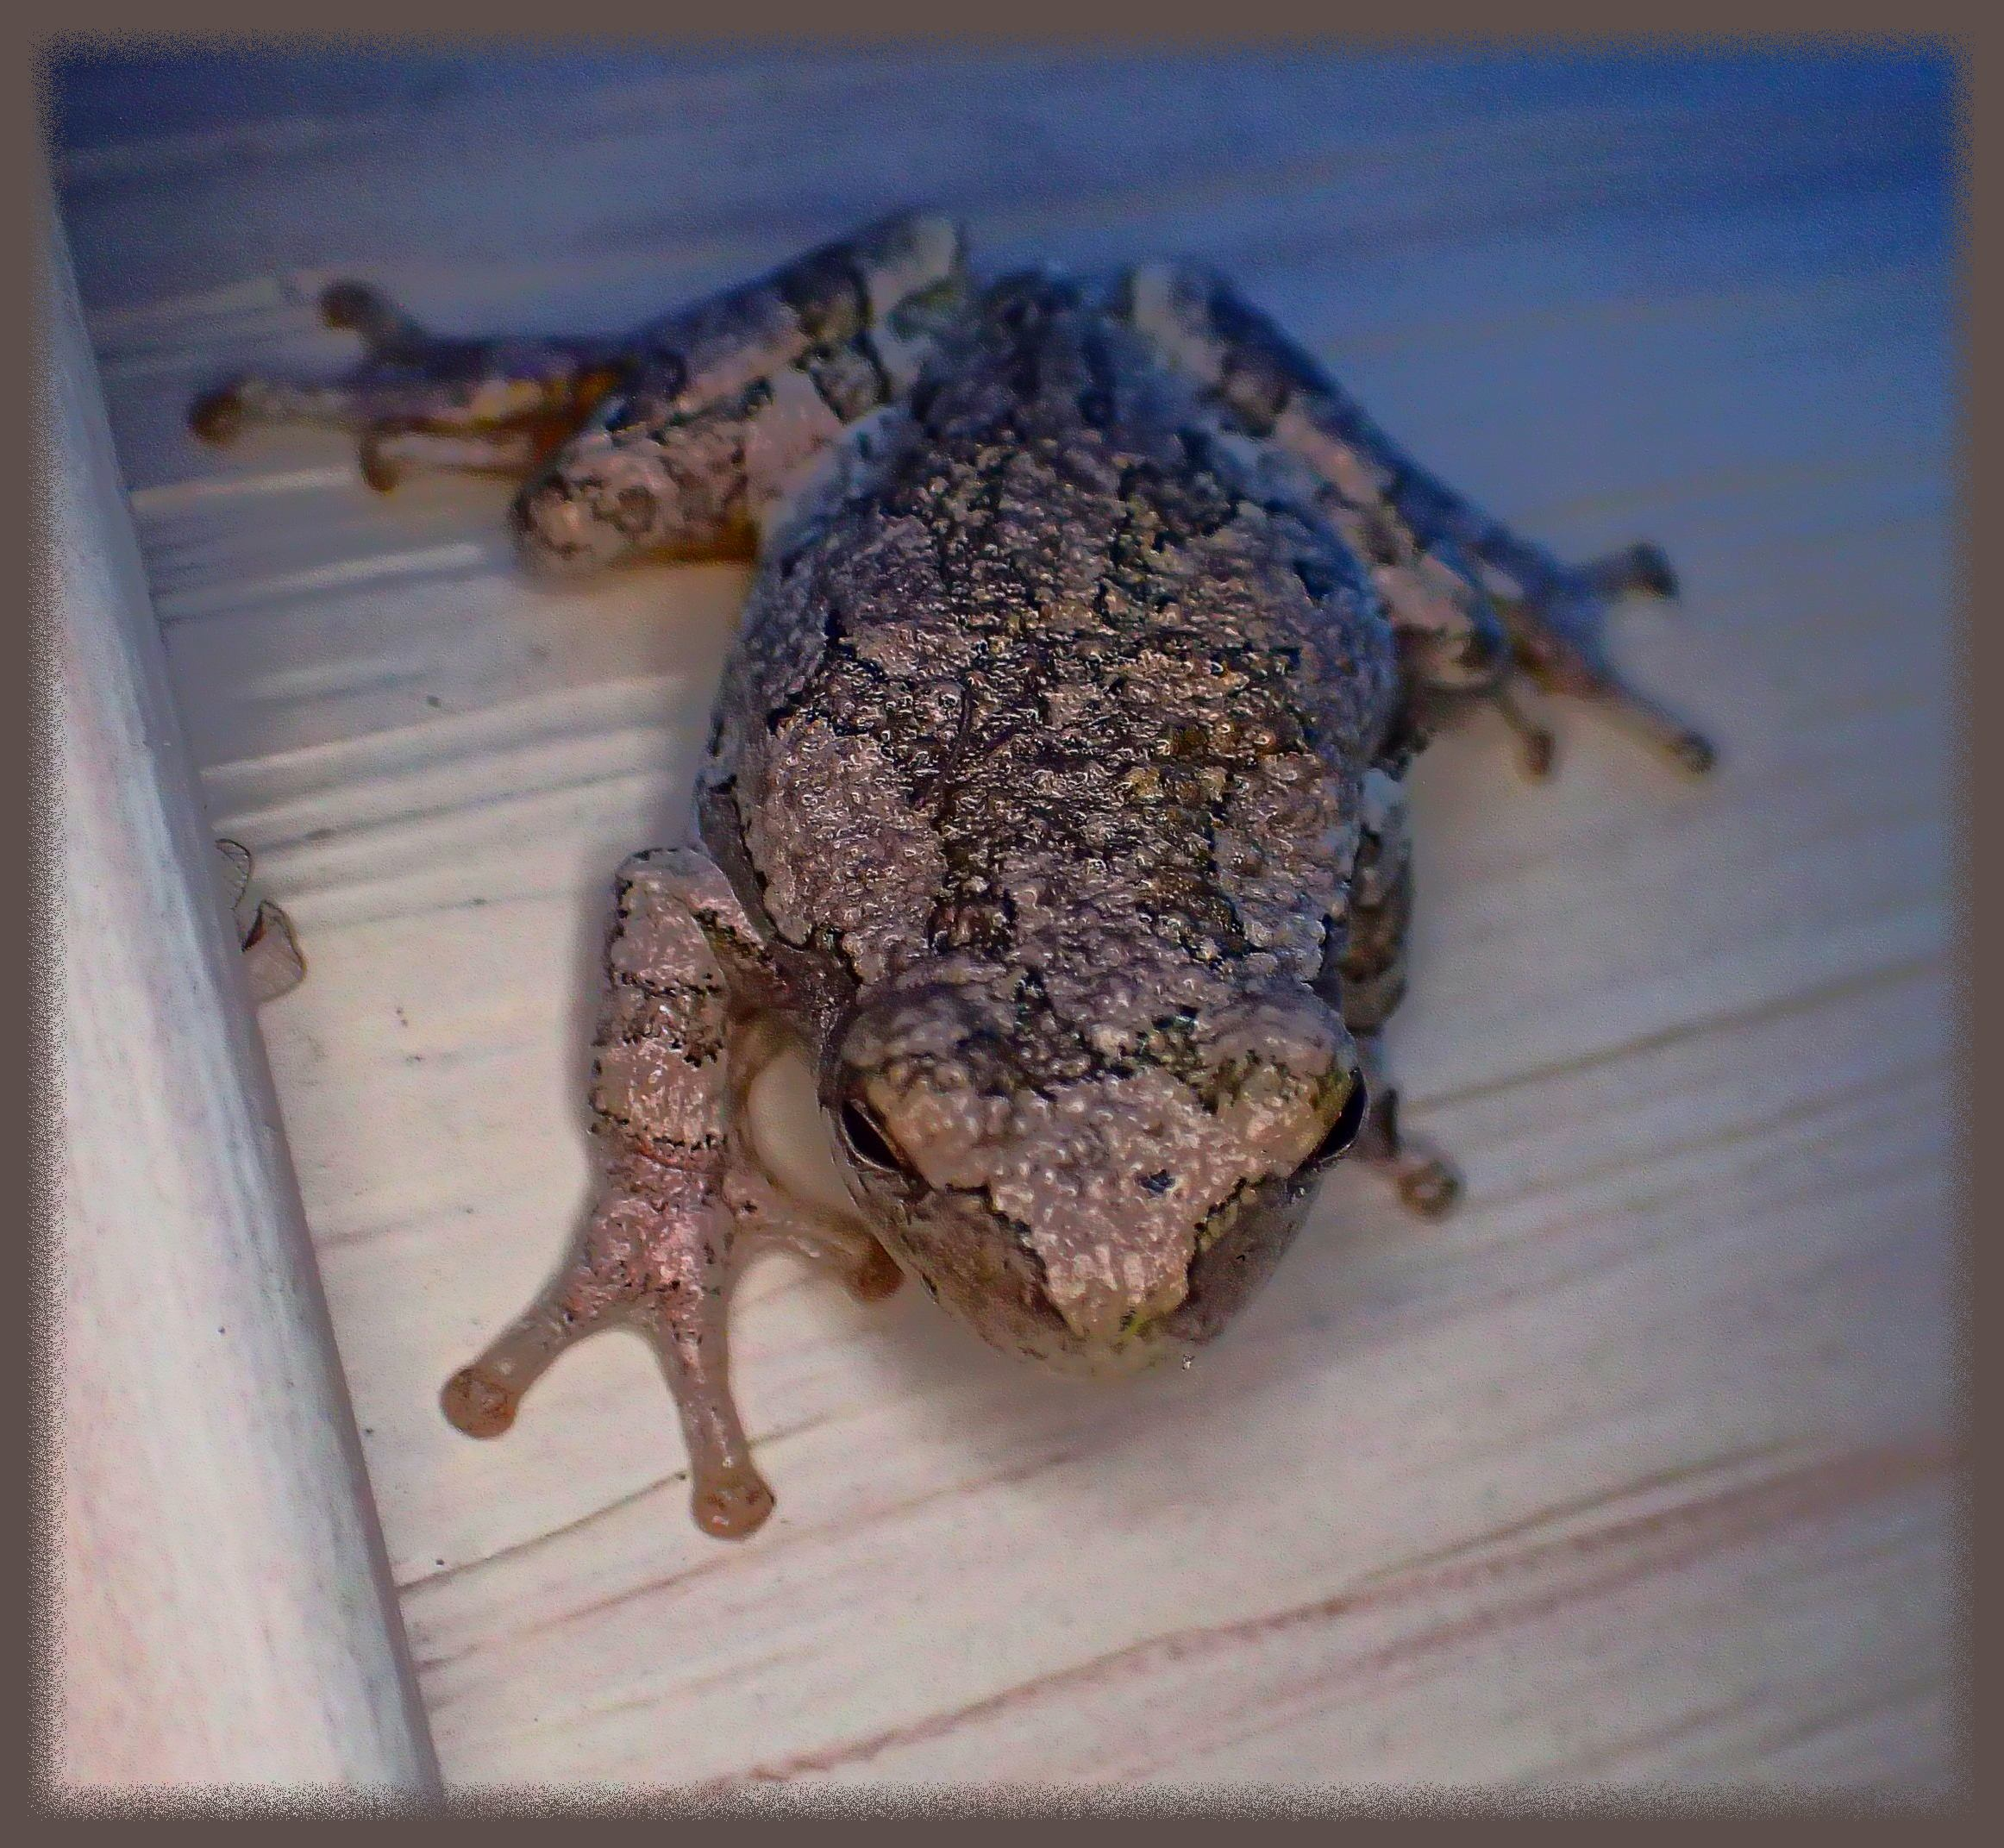 Tree Frog on brownish house siding (blending in quite nicely). Photo by Thomas Peace c. 2015